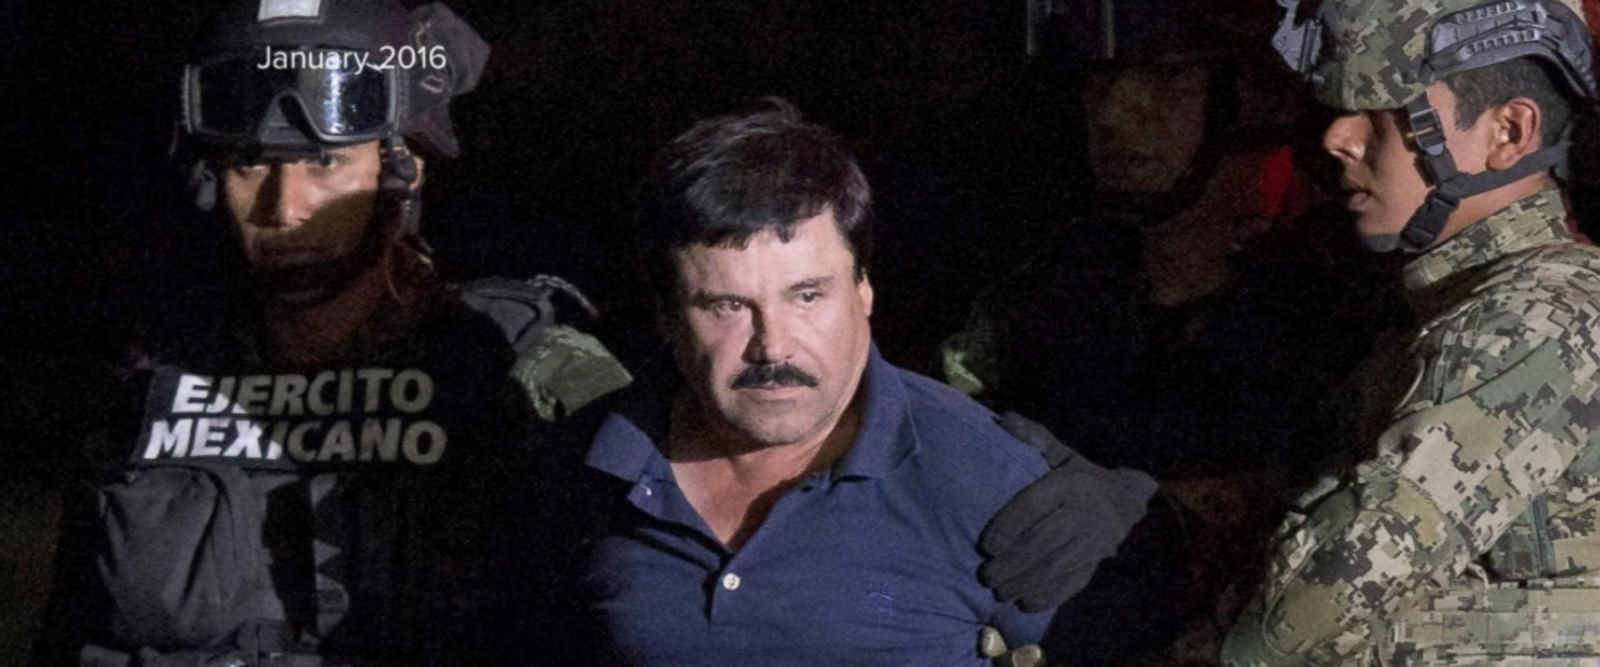 The drug lord is being extradited from Mexico to the United States.